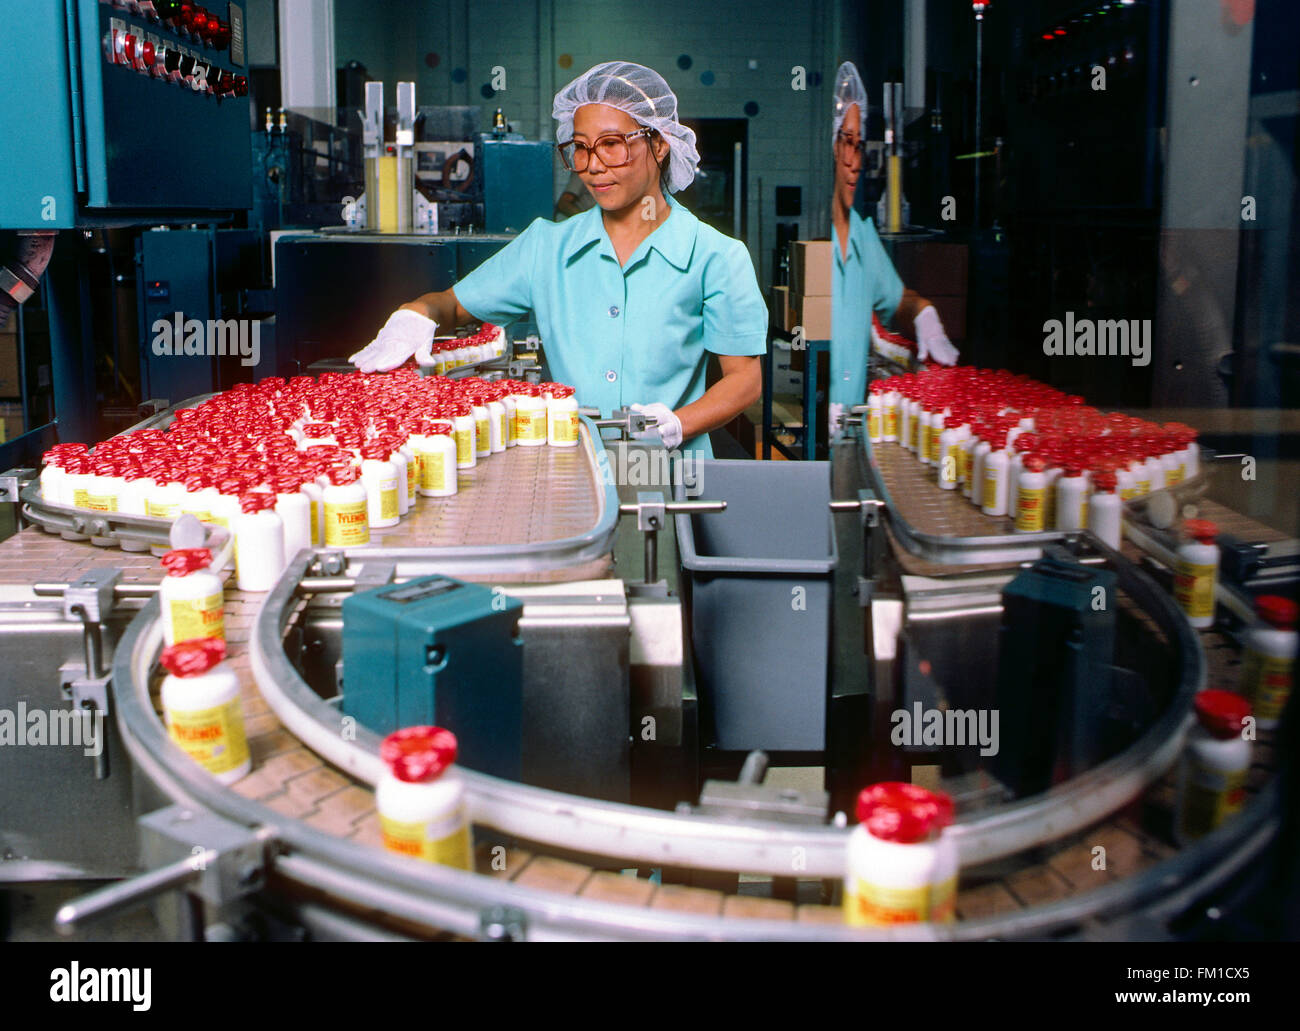 Asian factory worker performs quality control on pharmaceutical production line of Tylenol painkiller - Stock Image